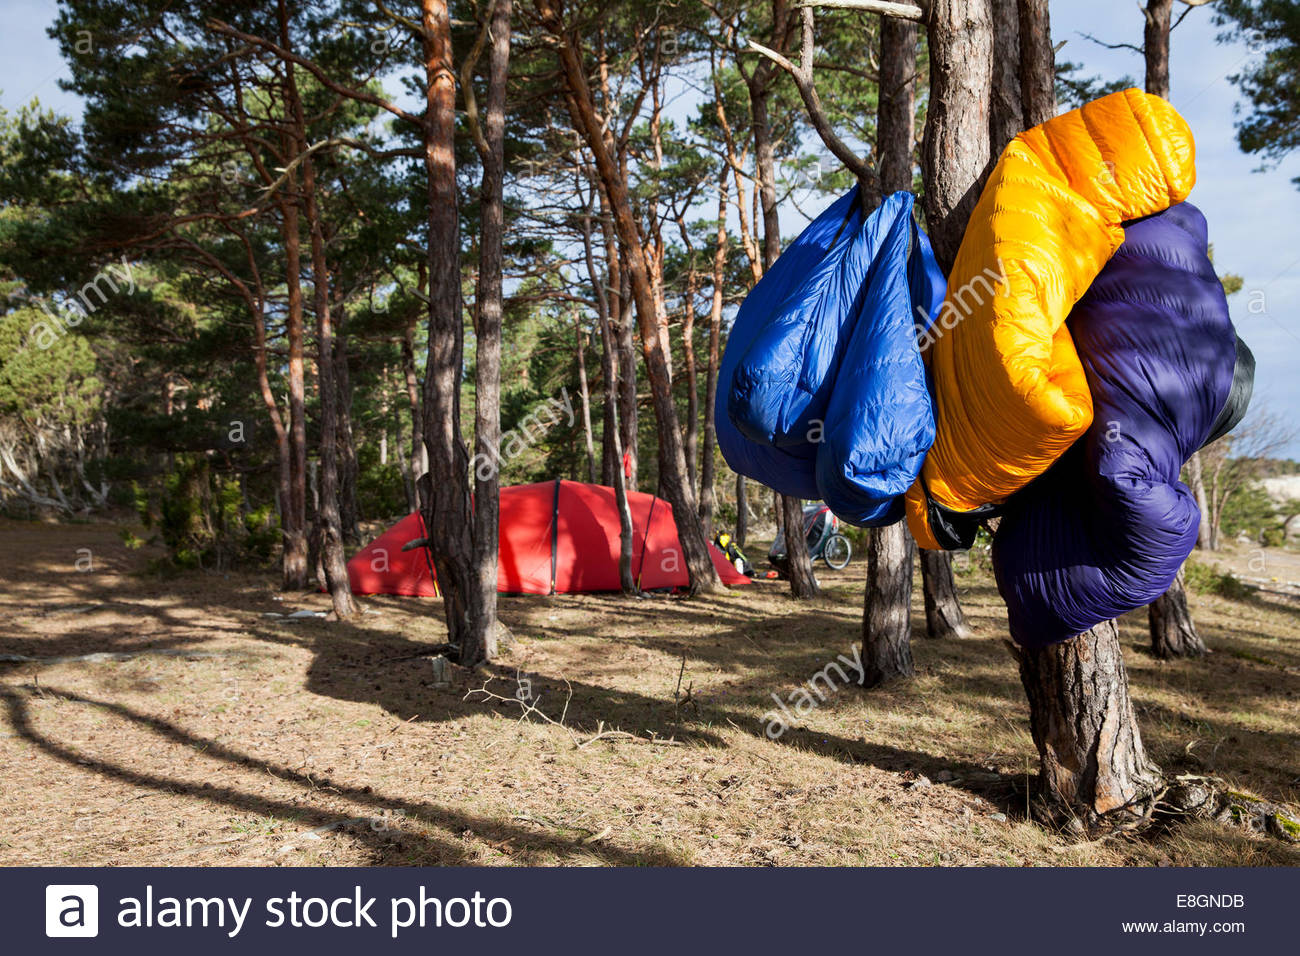 Camping equipment hanging on tree trunk in forest - Stock Image